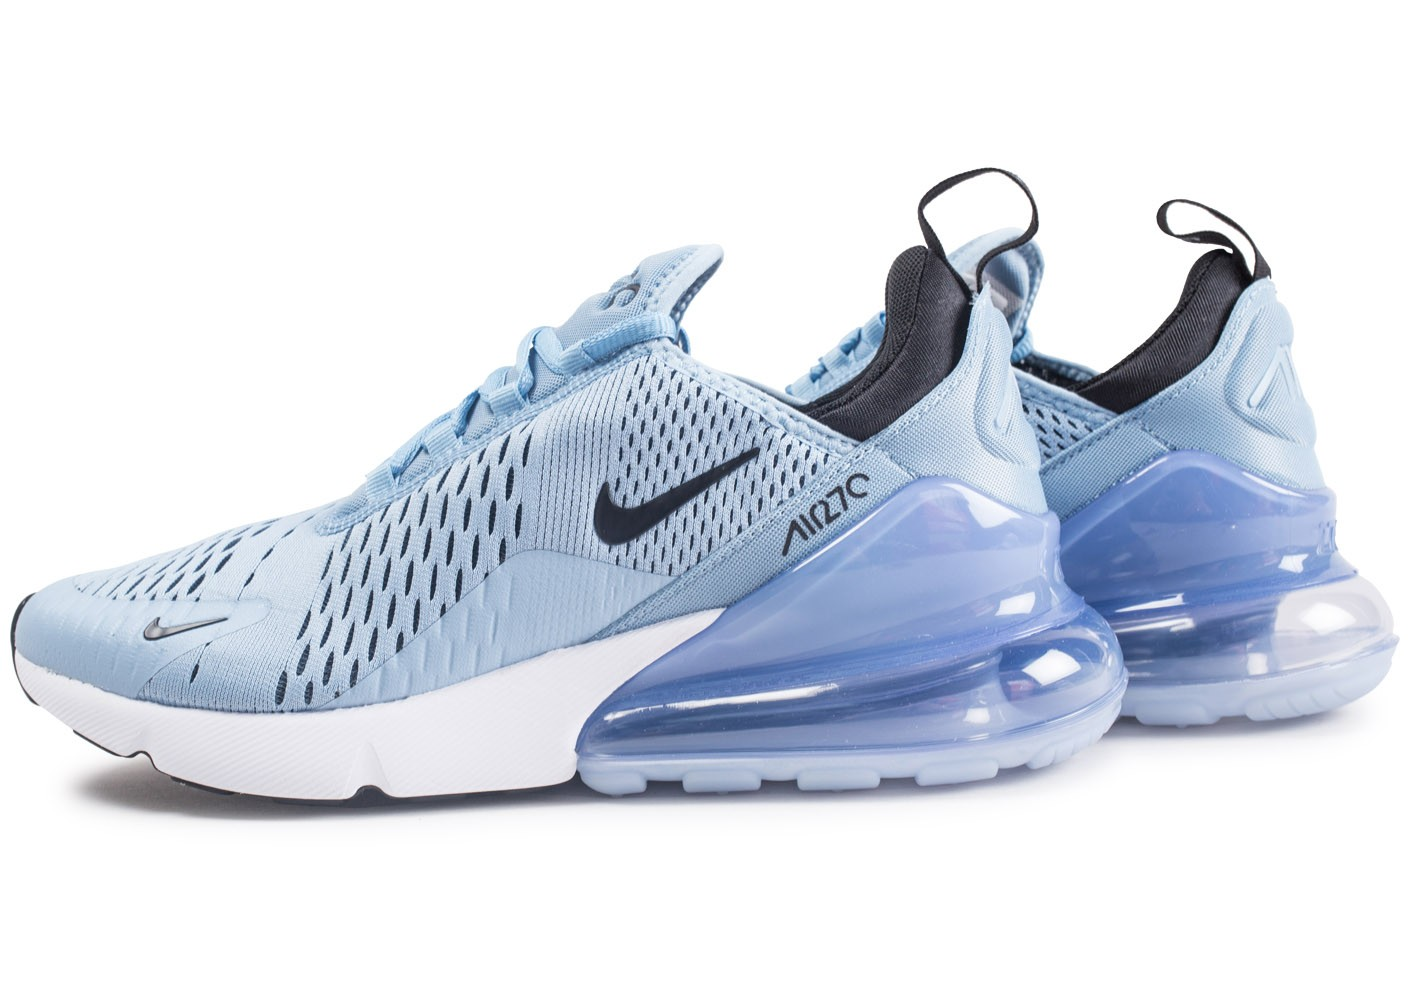 check-out e7e12 e3de8 Nike Air Max 270 bleu - Chaussures Baskets homme - Chausport